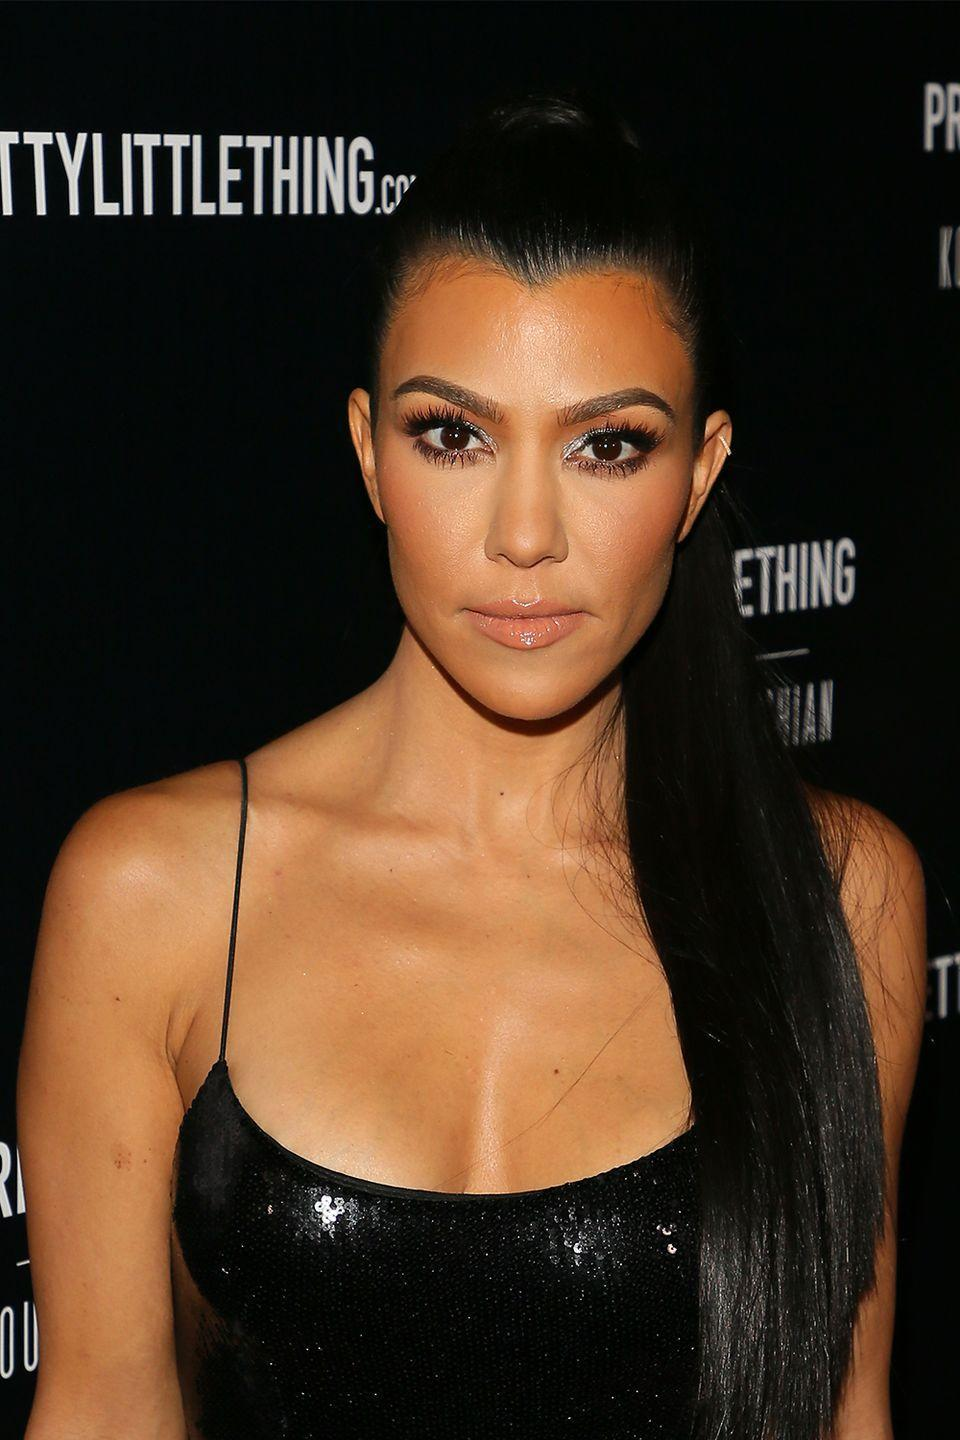 """<p>Kardashian had a very strange moment on live TV while she was being interviewed on the Australian talk show <em>Today Extra.</em> After being asked how Kim was doing, she starts to answer, but then is <a href=""""https://www.youtube.com/watch?v=bWN8Qjlgywk"""" rel=""""nofollow noopener"""" target=""""_blank"""" data-ylk=""""slk:distracted by someone behind the camera"""" class=""""link rapid-noclick-resp"""">distracted by someone behind the camera</a>. She stops talking all together, and when the host asks if someone else is talking to her she says, """"Yes, sorry."""" So he tries to ask the question again, but Kardashian continues to awkwardly stay silent.</p>"""